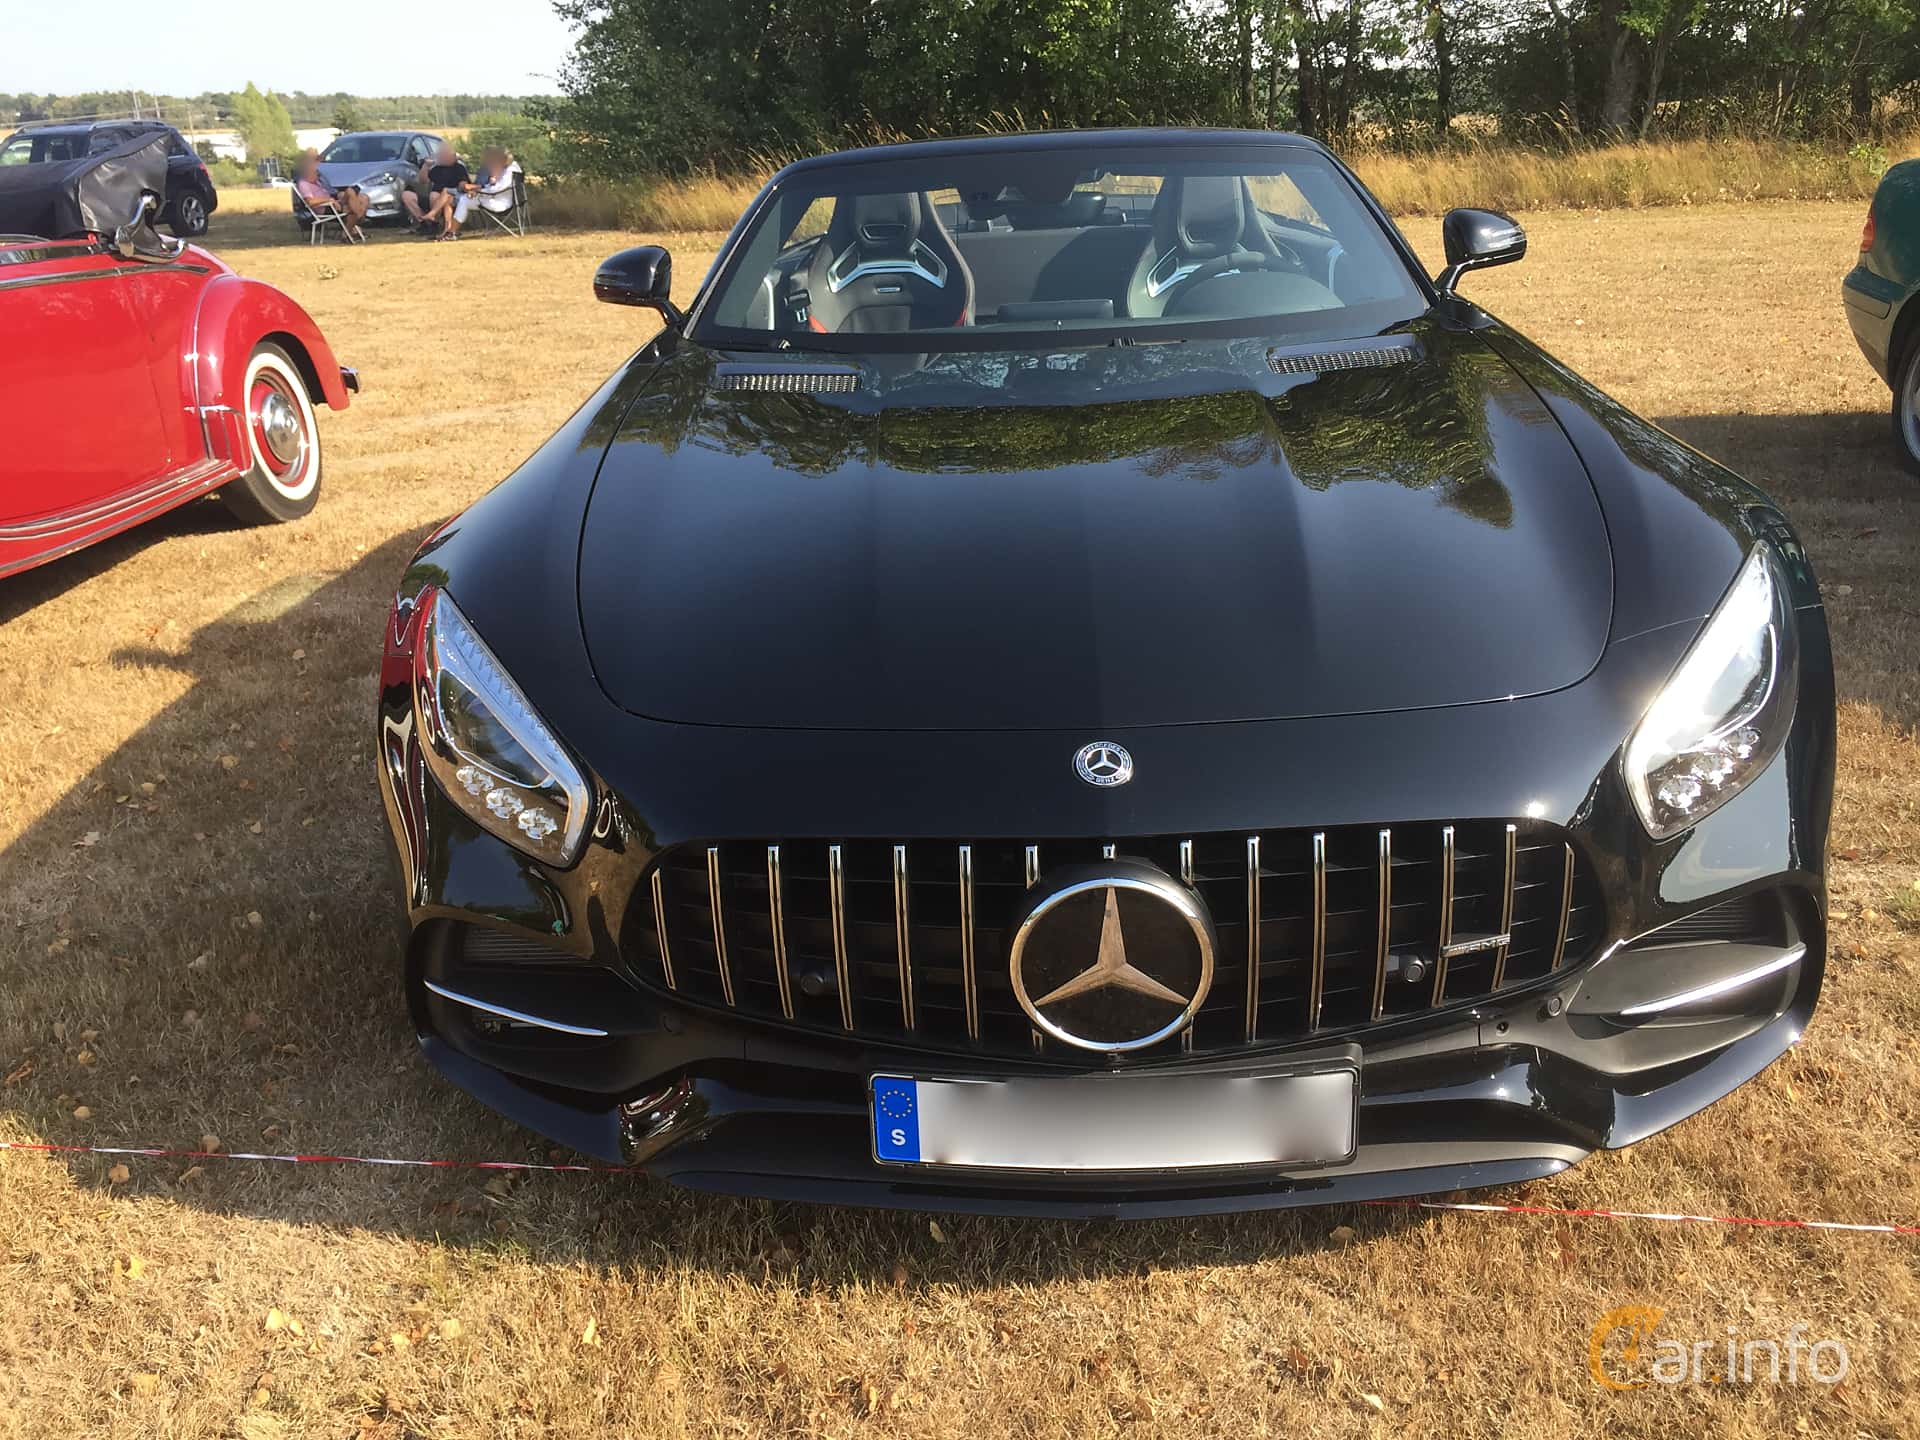 Mercedes-Benz AMG GT C Roadster 4.0 V8 AMG Speedshift DCT, 557hp, 2017 at Eddys bilträff Augusti 2018